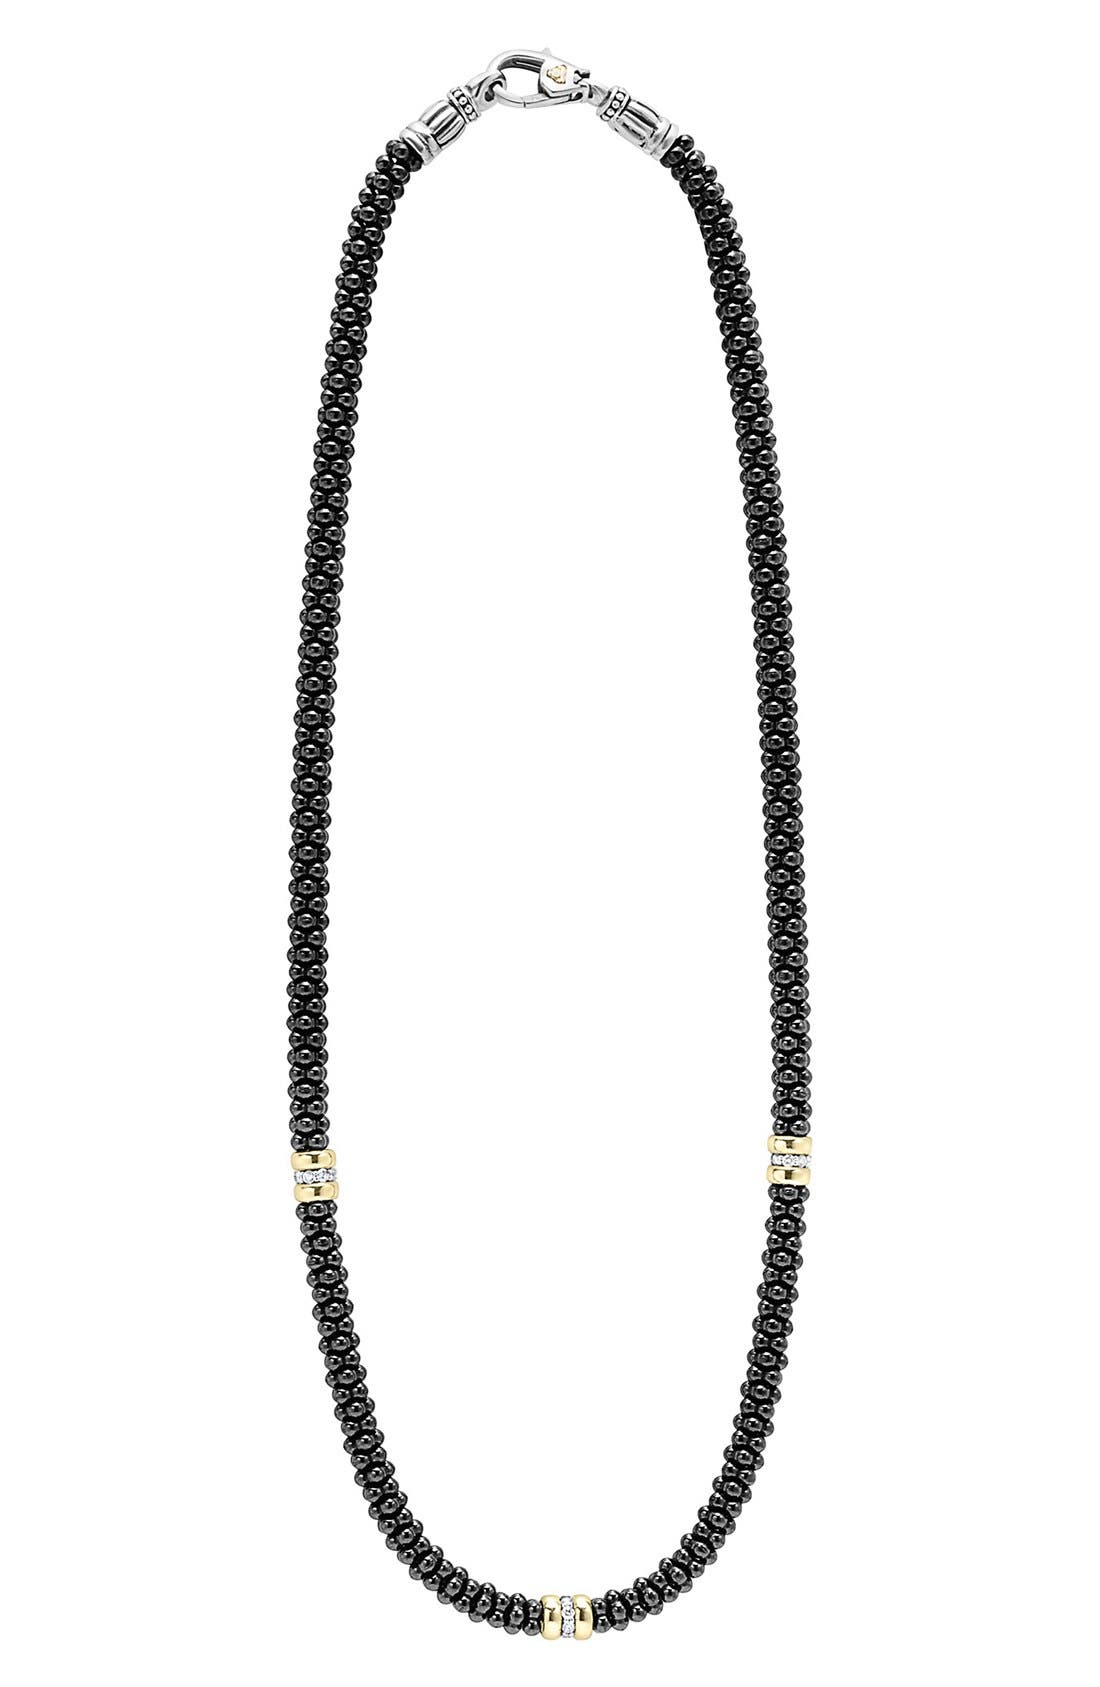 LAGOS Black Caviar Station Necklace